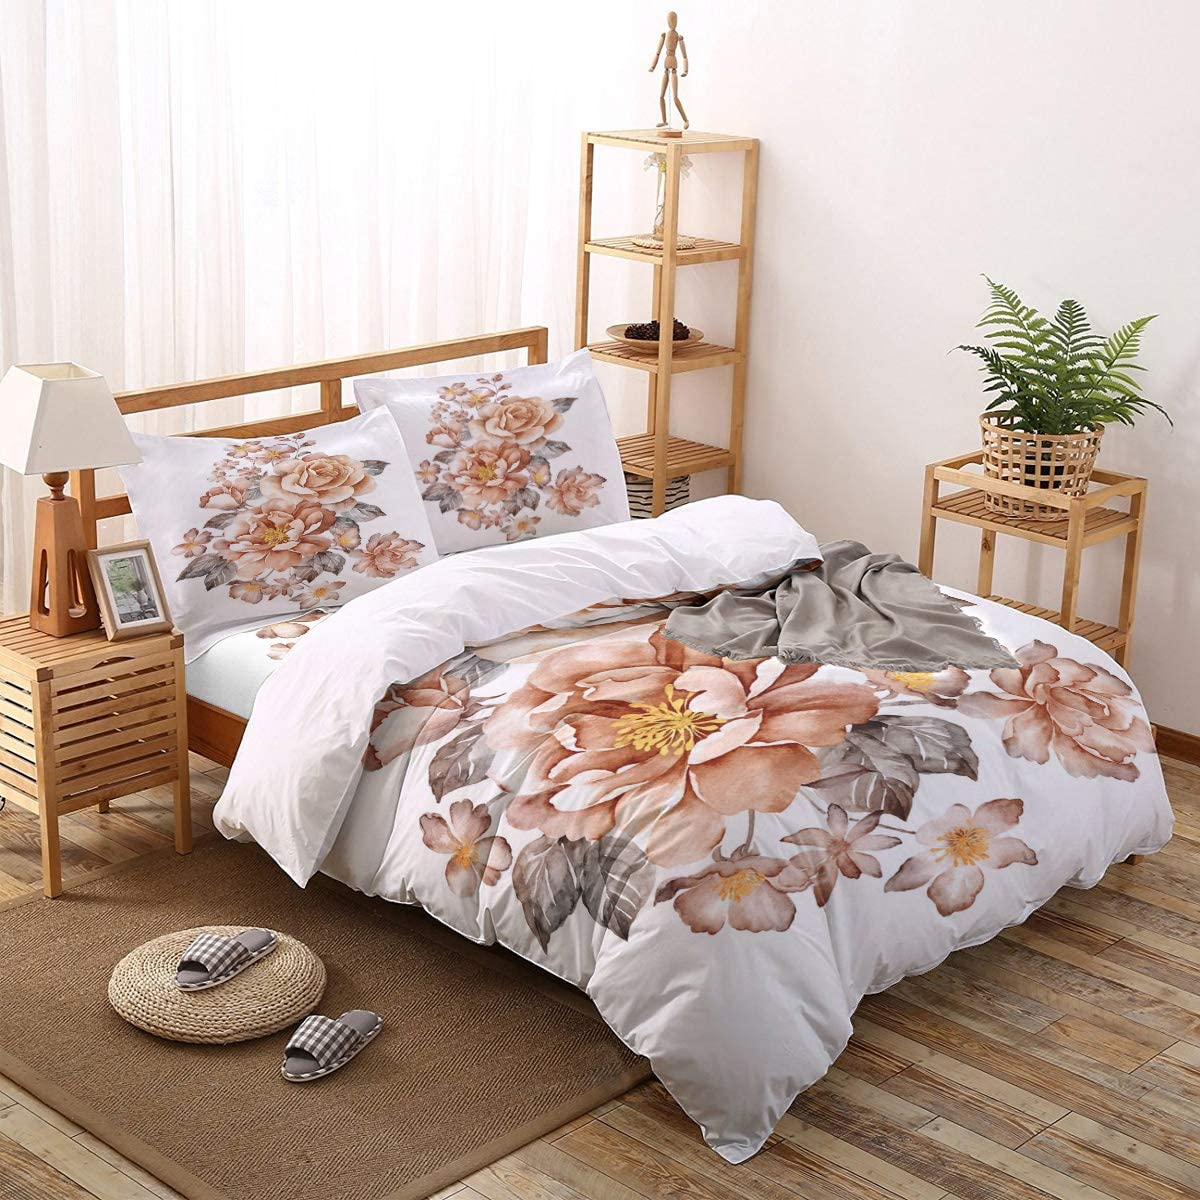 Super special Cheap price Greeeen 4 Pieces Duvet Cover Flat + Bedding Set- 1